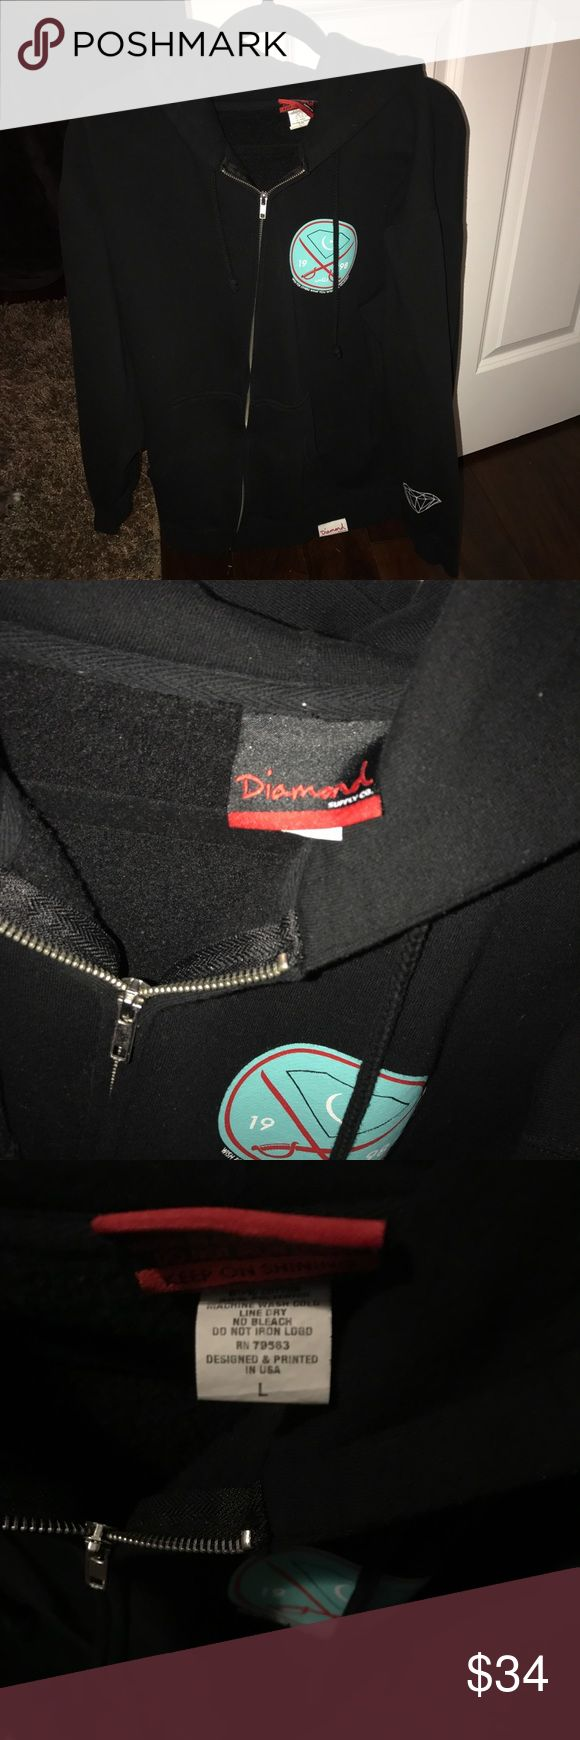 Diamond Supply CO. sweatshirt Diamond Supply Company zip-up hoodie! Only worn a handful of times and was perfect for the winter weather for layering. It's a heavier jacket so it will keep you warm but also doesn't make you burn up inside! Diamond Supply Co. Jackets & Coats